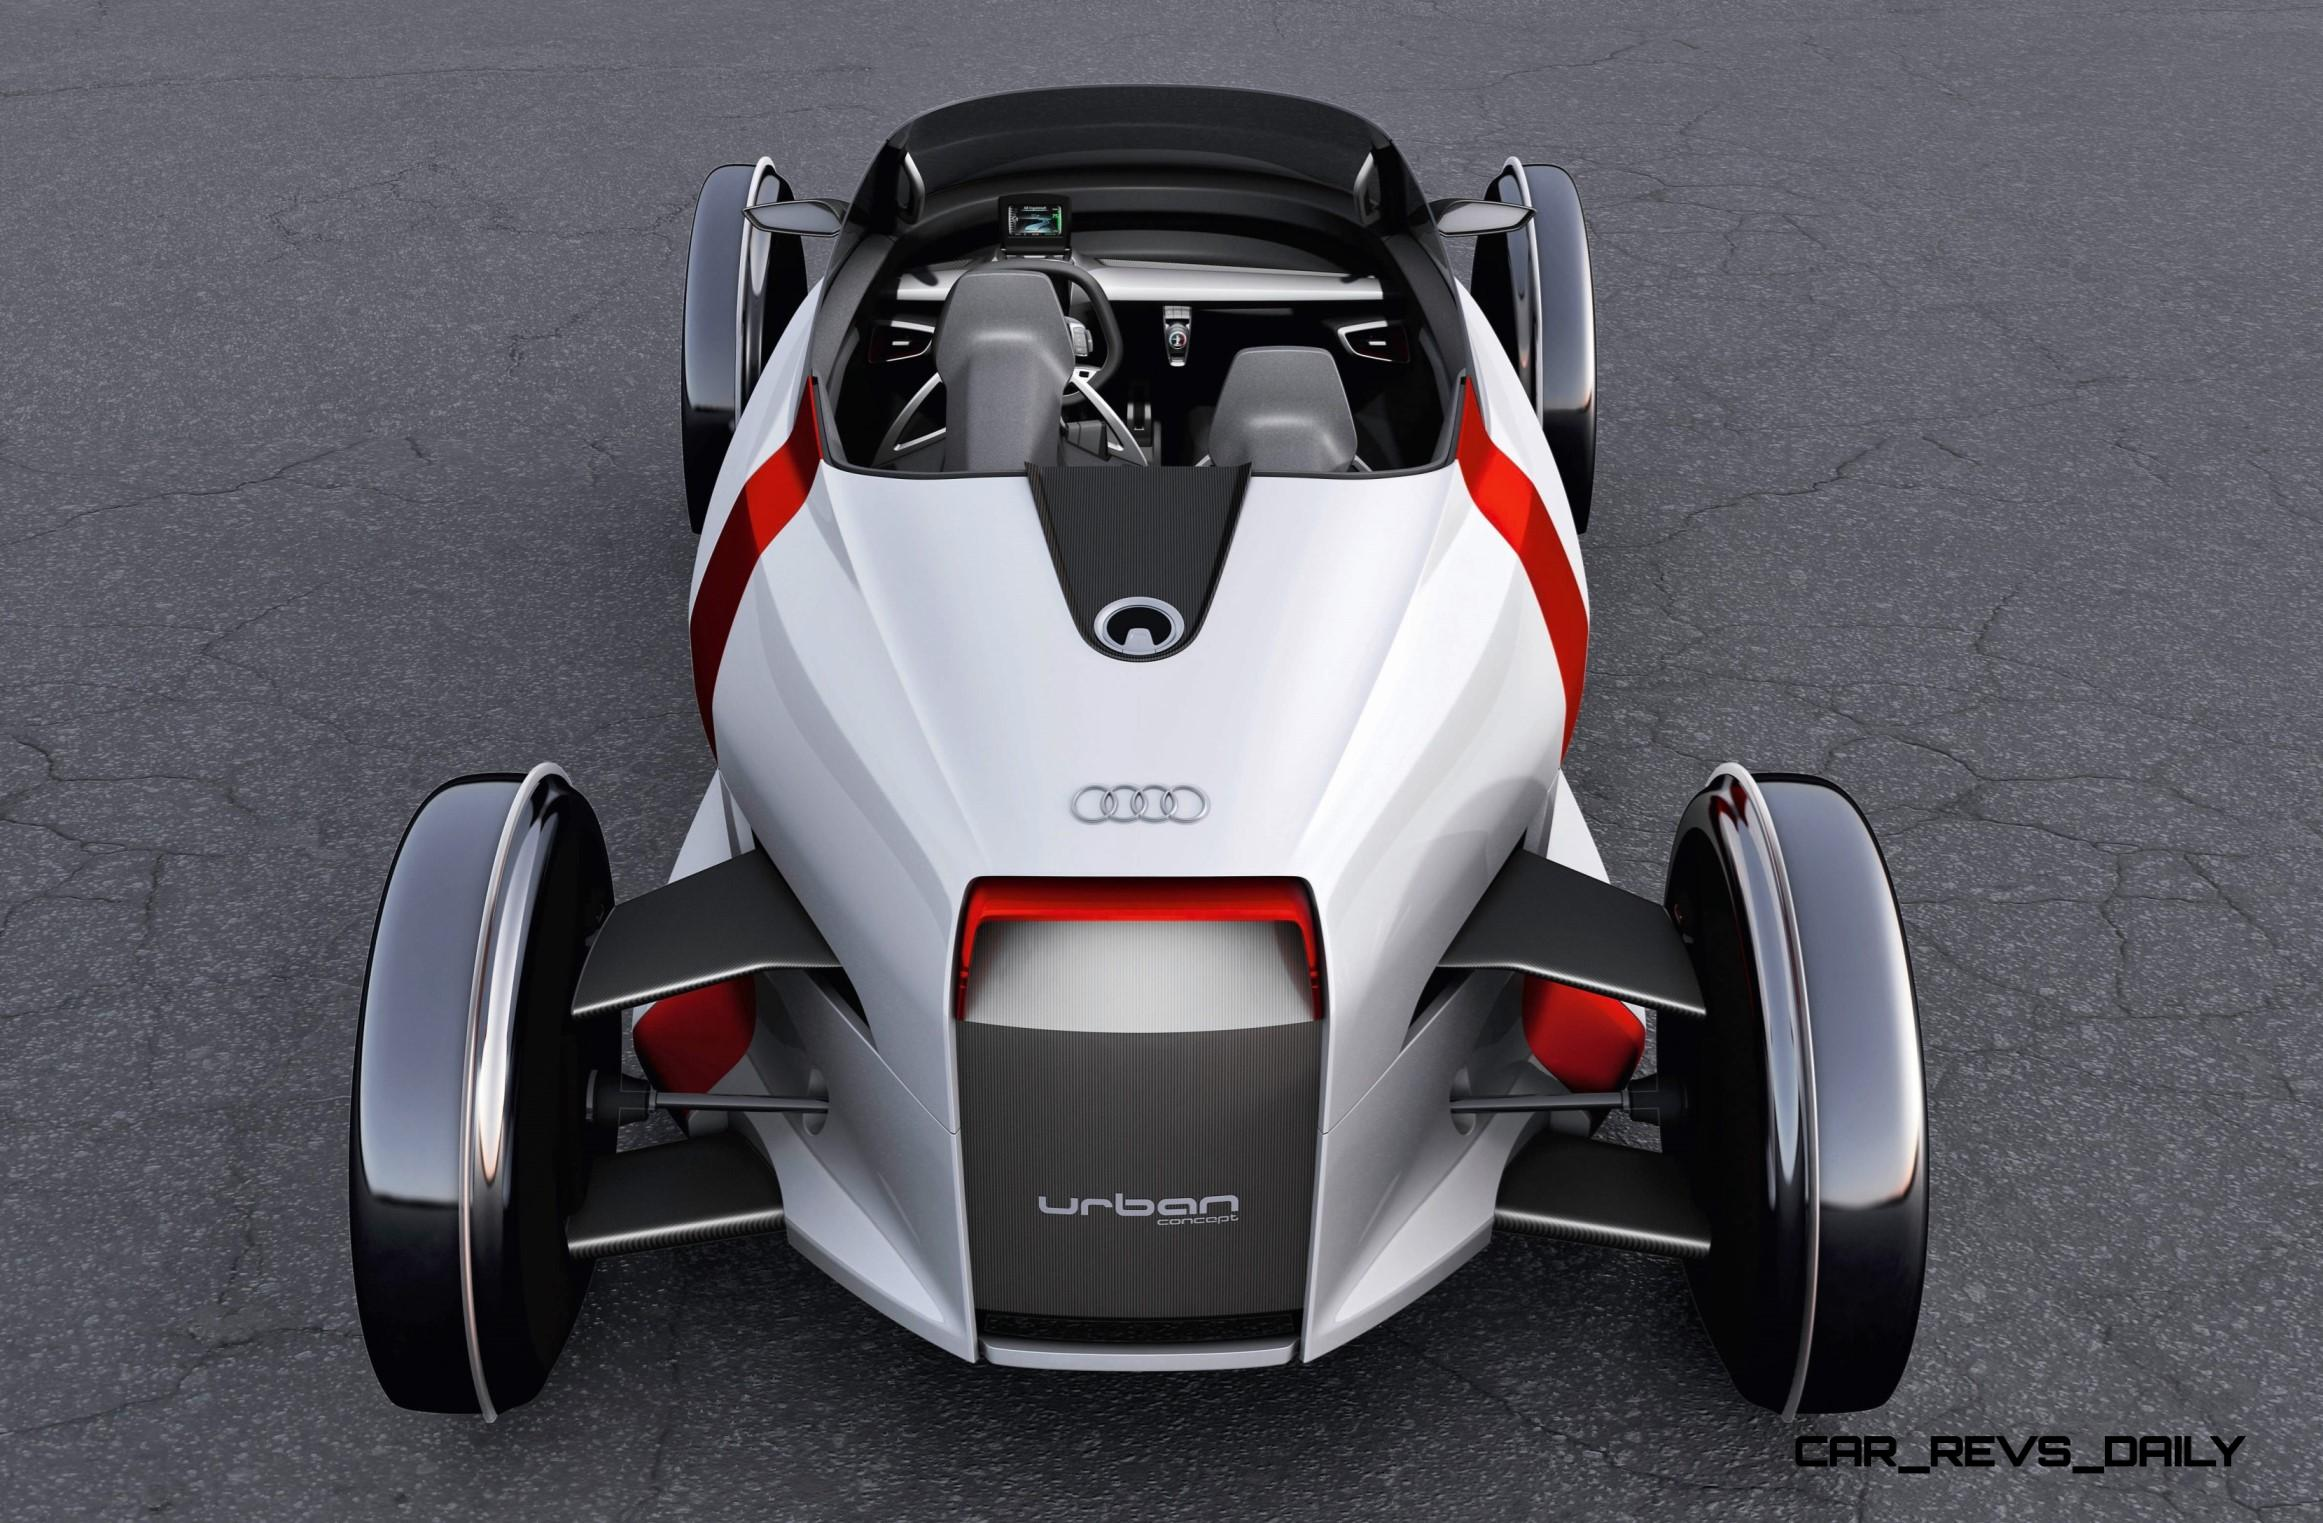 2011 Audi Urban Concept Spyder Is 2 Seater For Scooter Phobes